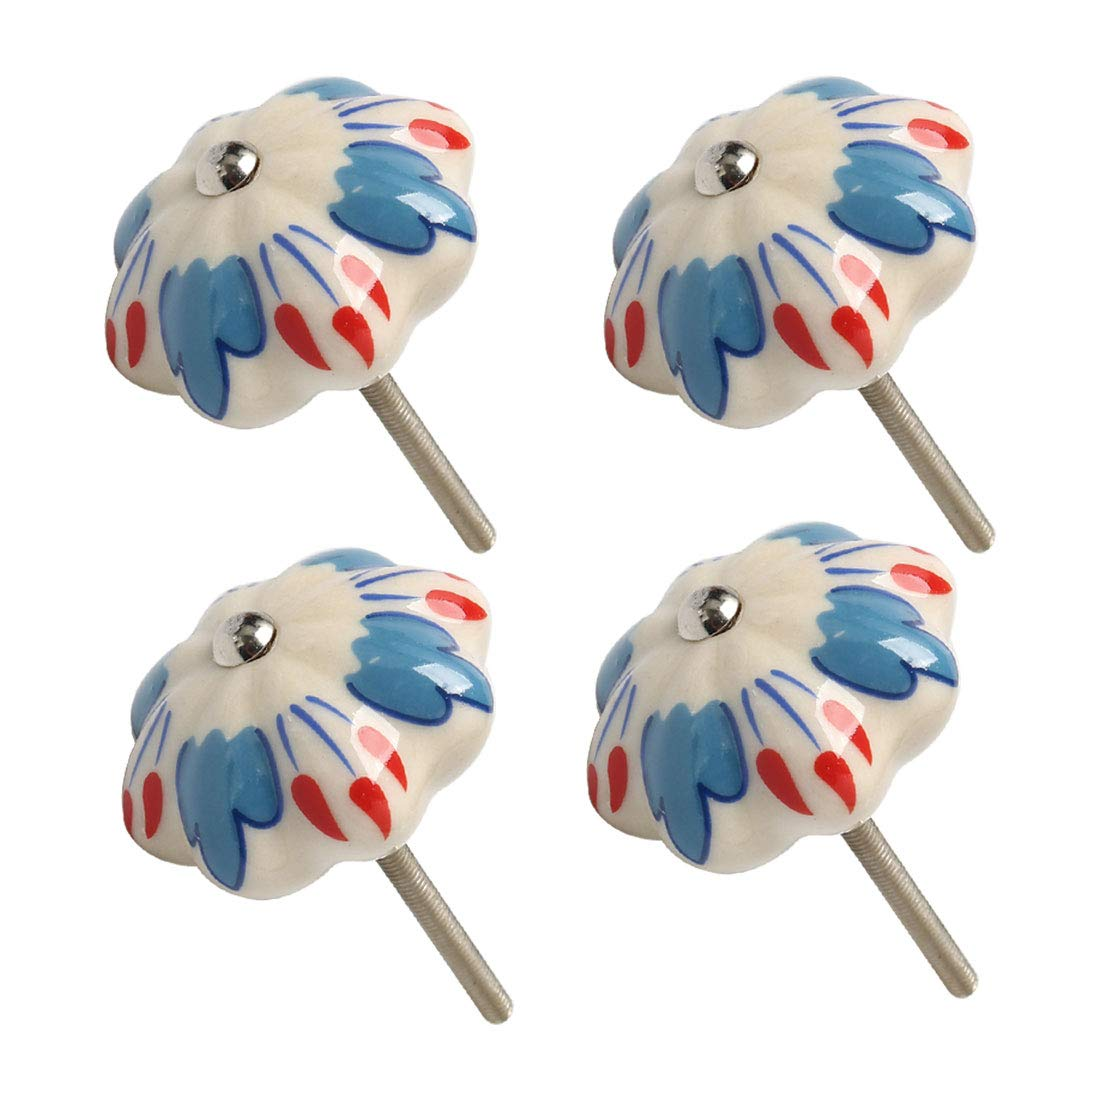 uxcell Ceramic Knobs Drawer Hand Printed Pull Handle Furniture Door Cabinet Cupboard Wardrobe Dresser Replacement #4